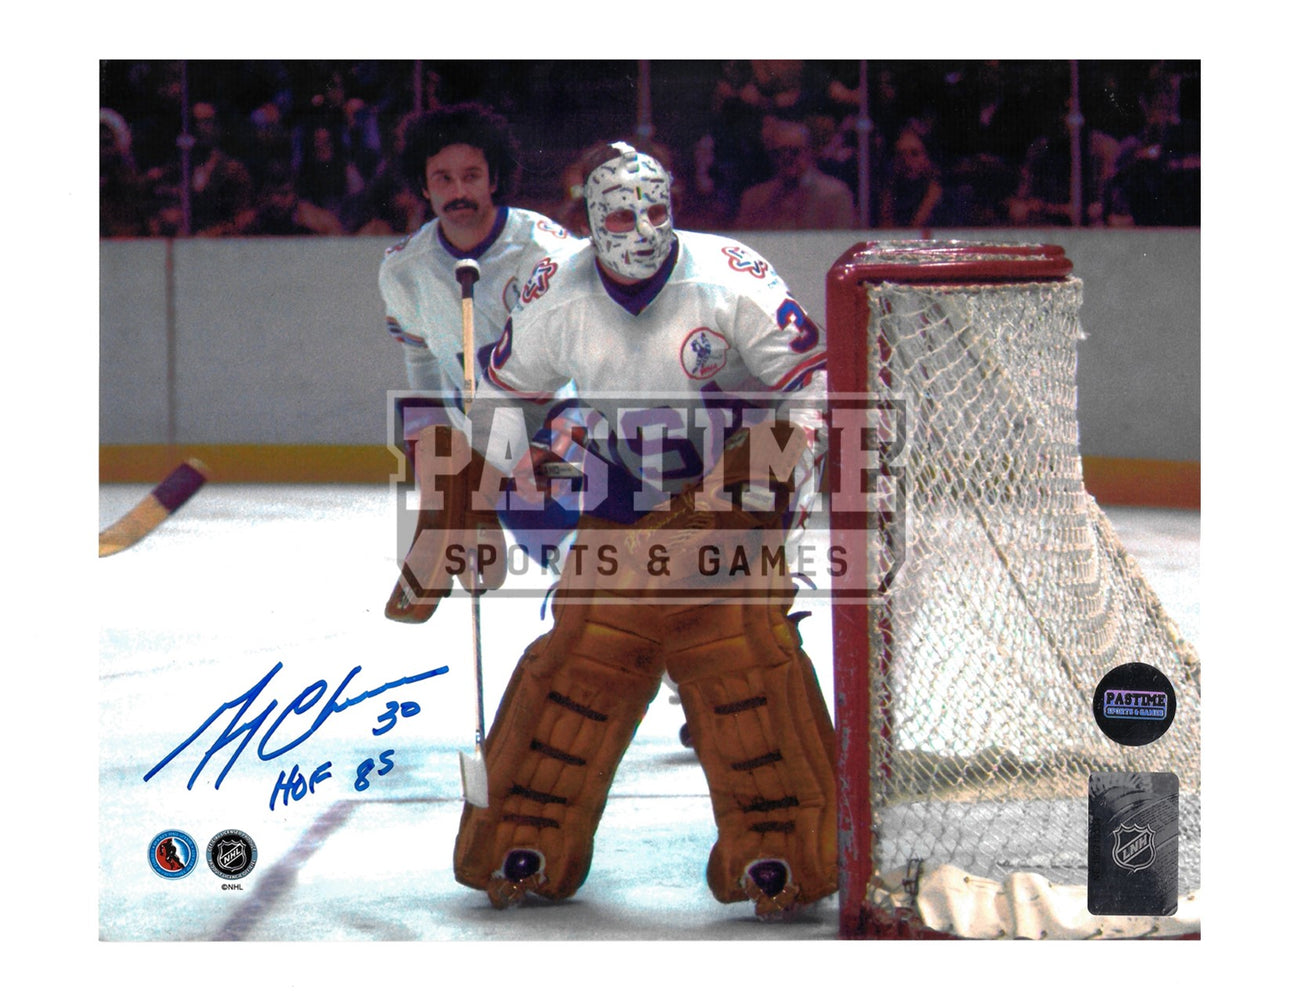 Gerry Cheevers Autographed 8X10 Team USA Away Jersey (In Position) - Pastime Sports & Games